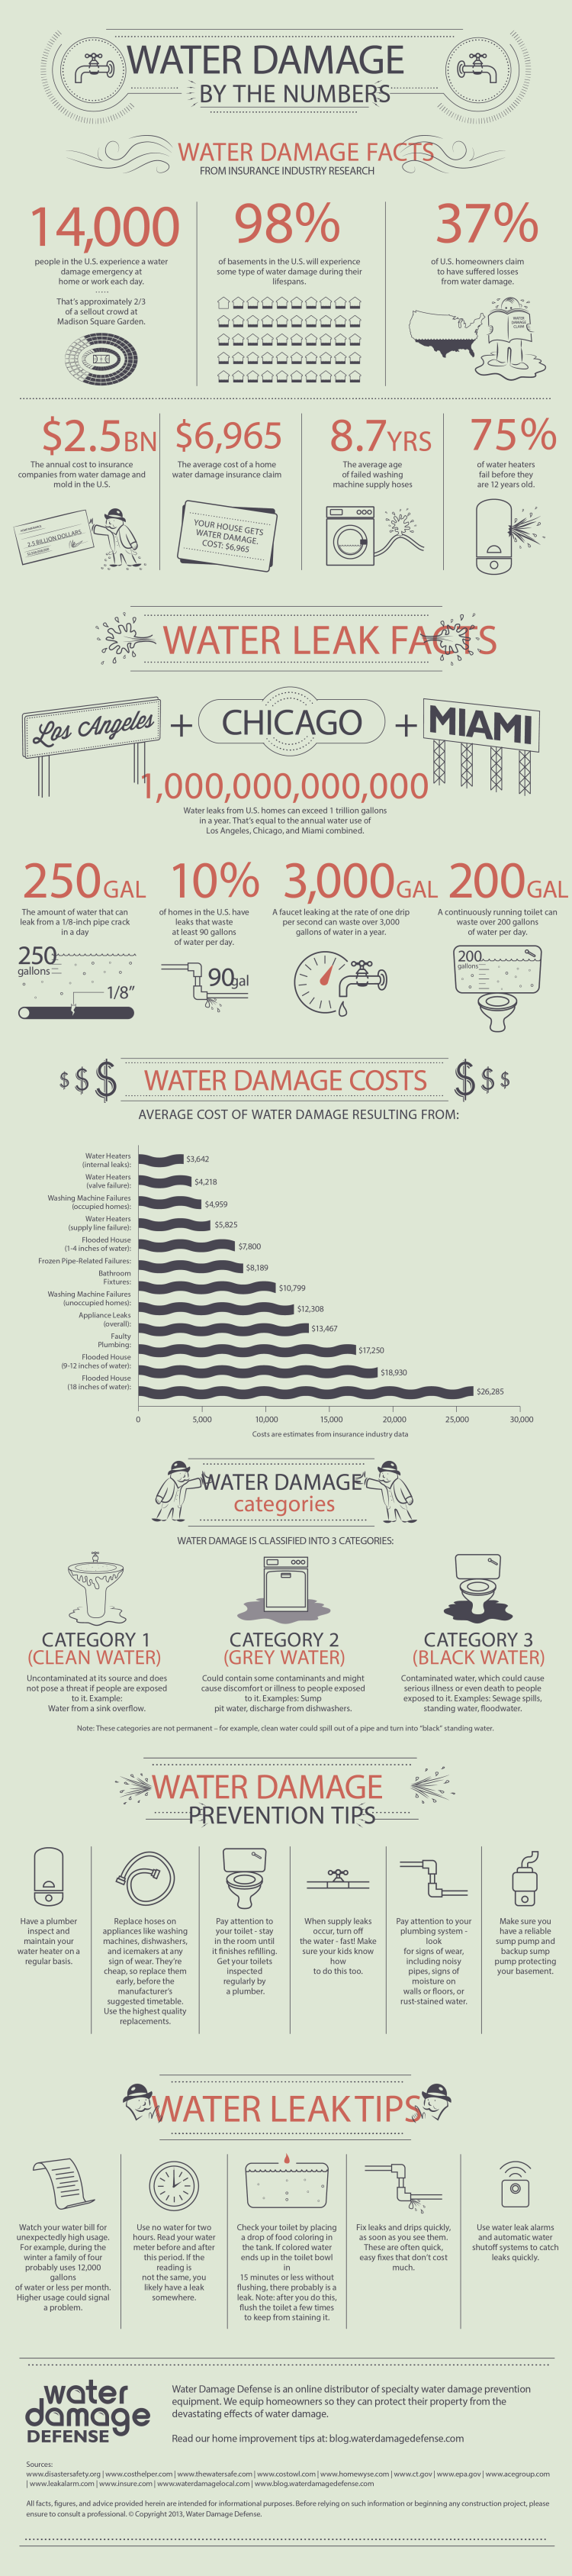 Water Damage By the Numbers